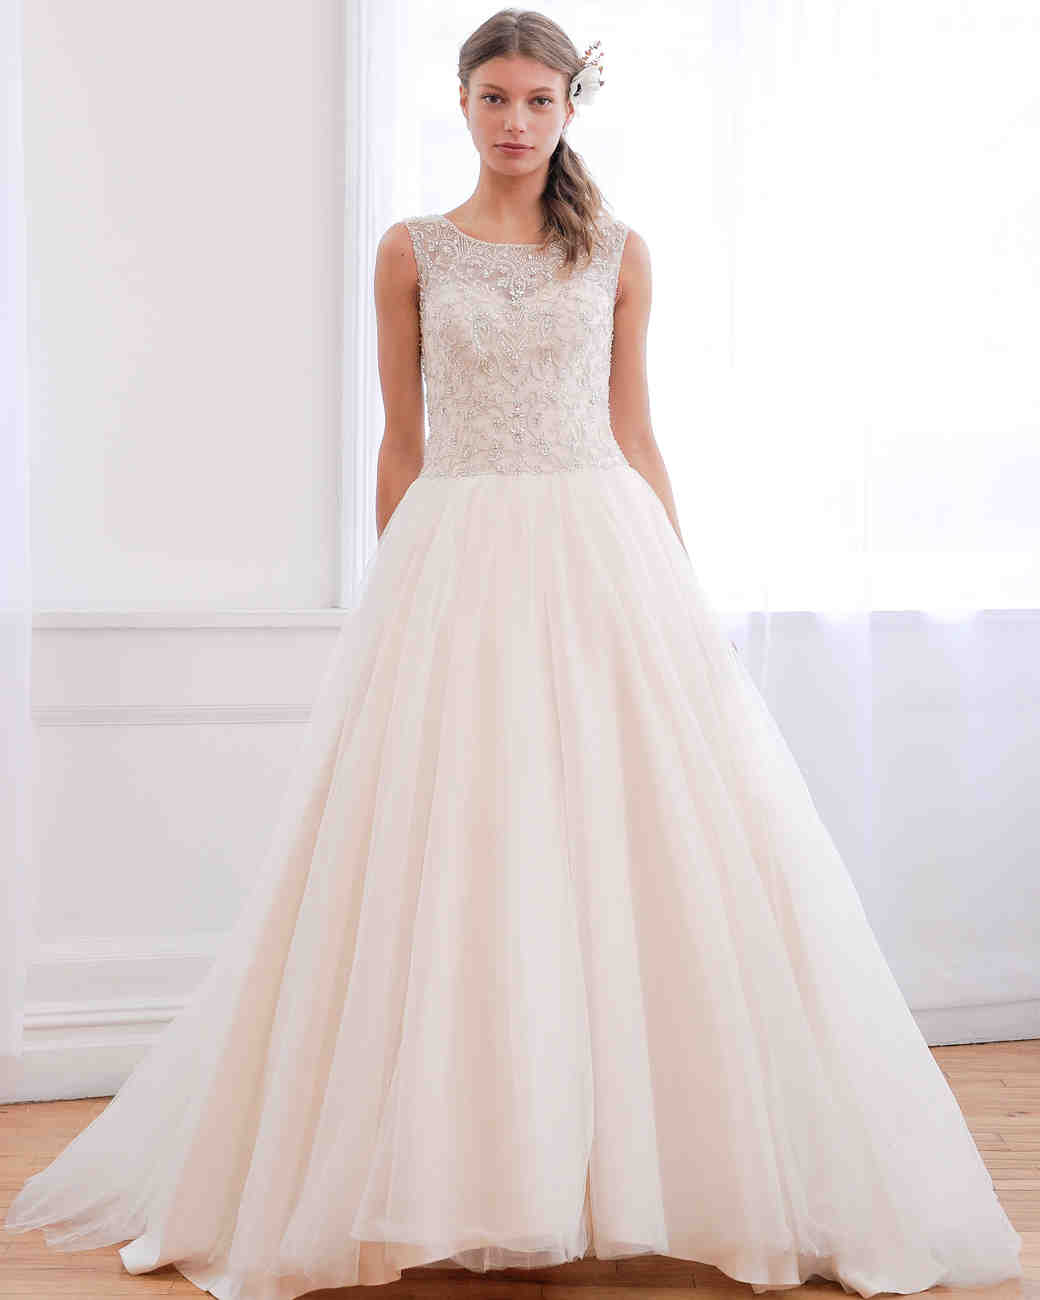 098559be9a49d David s Bridal Fall 2016 Wedding Dress Collection